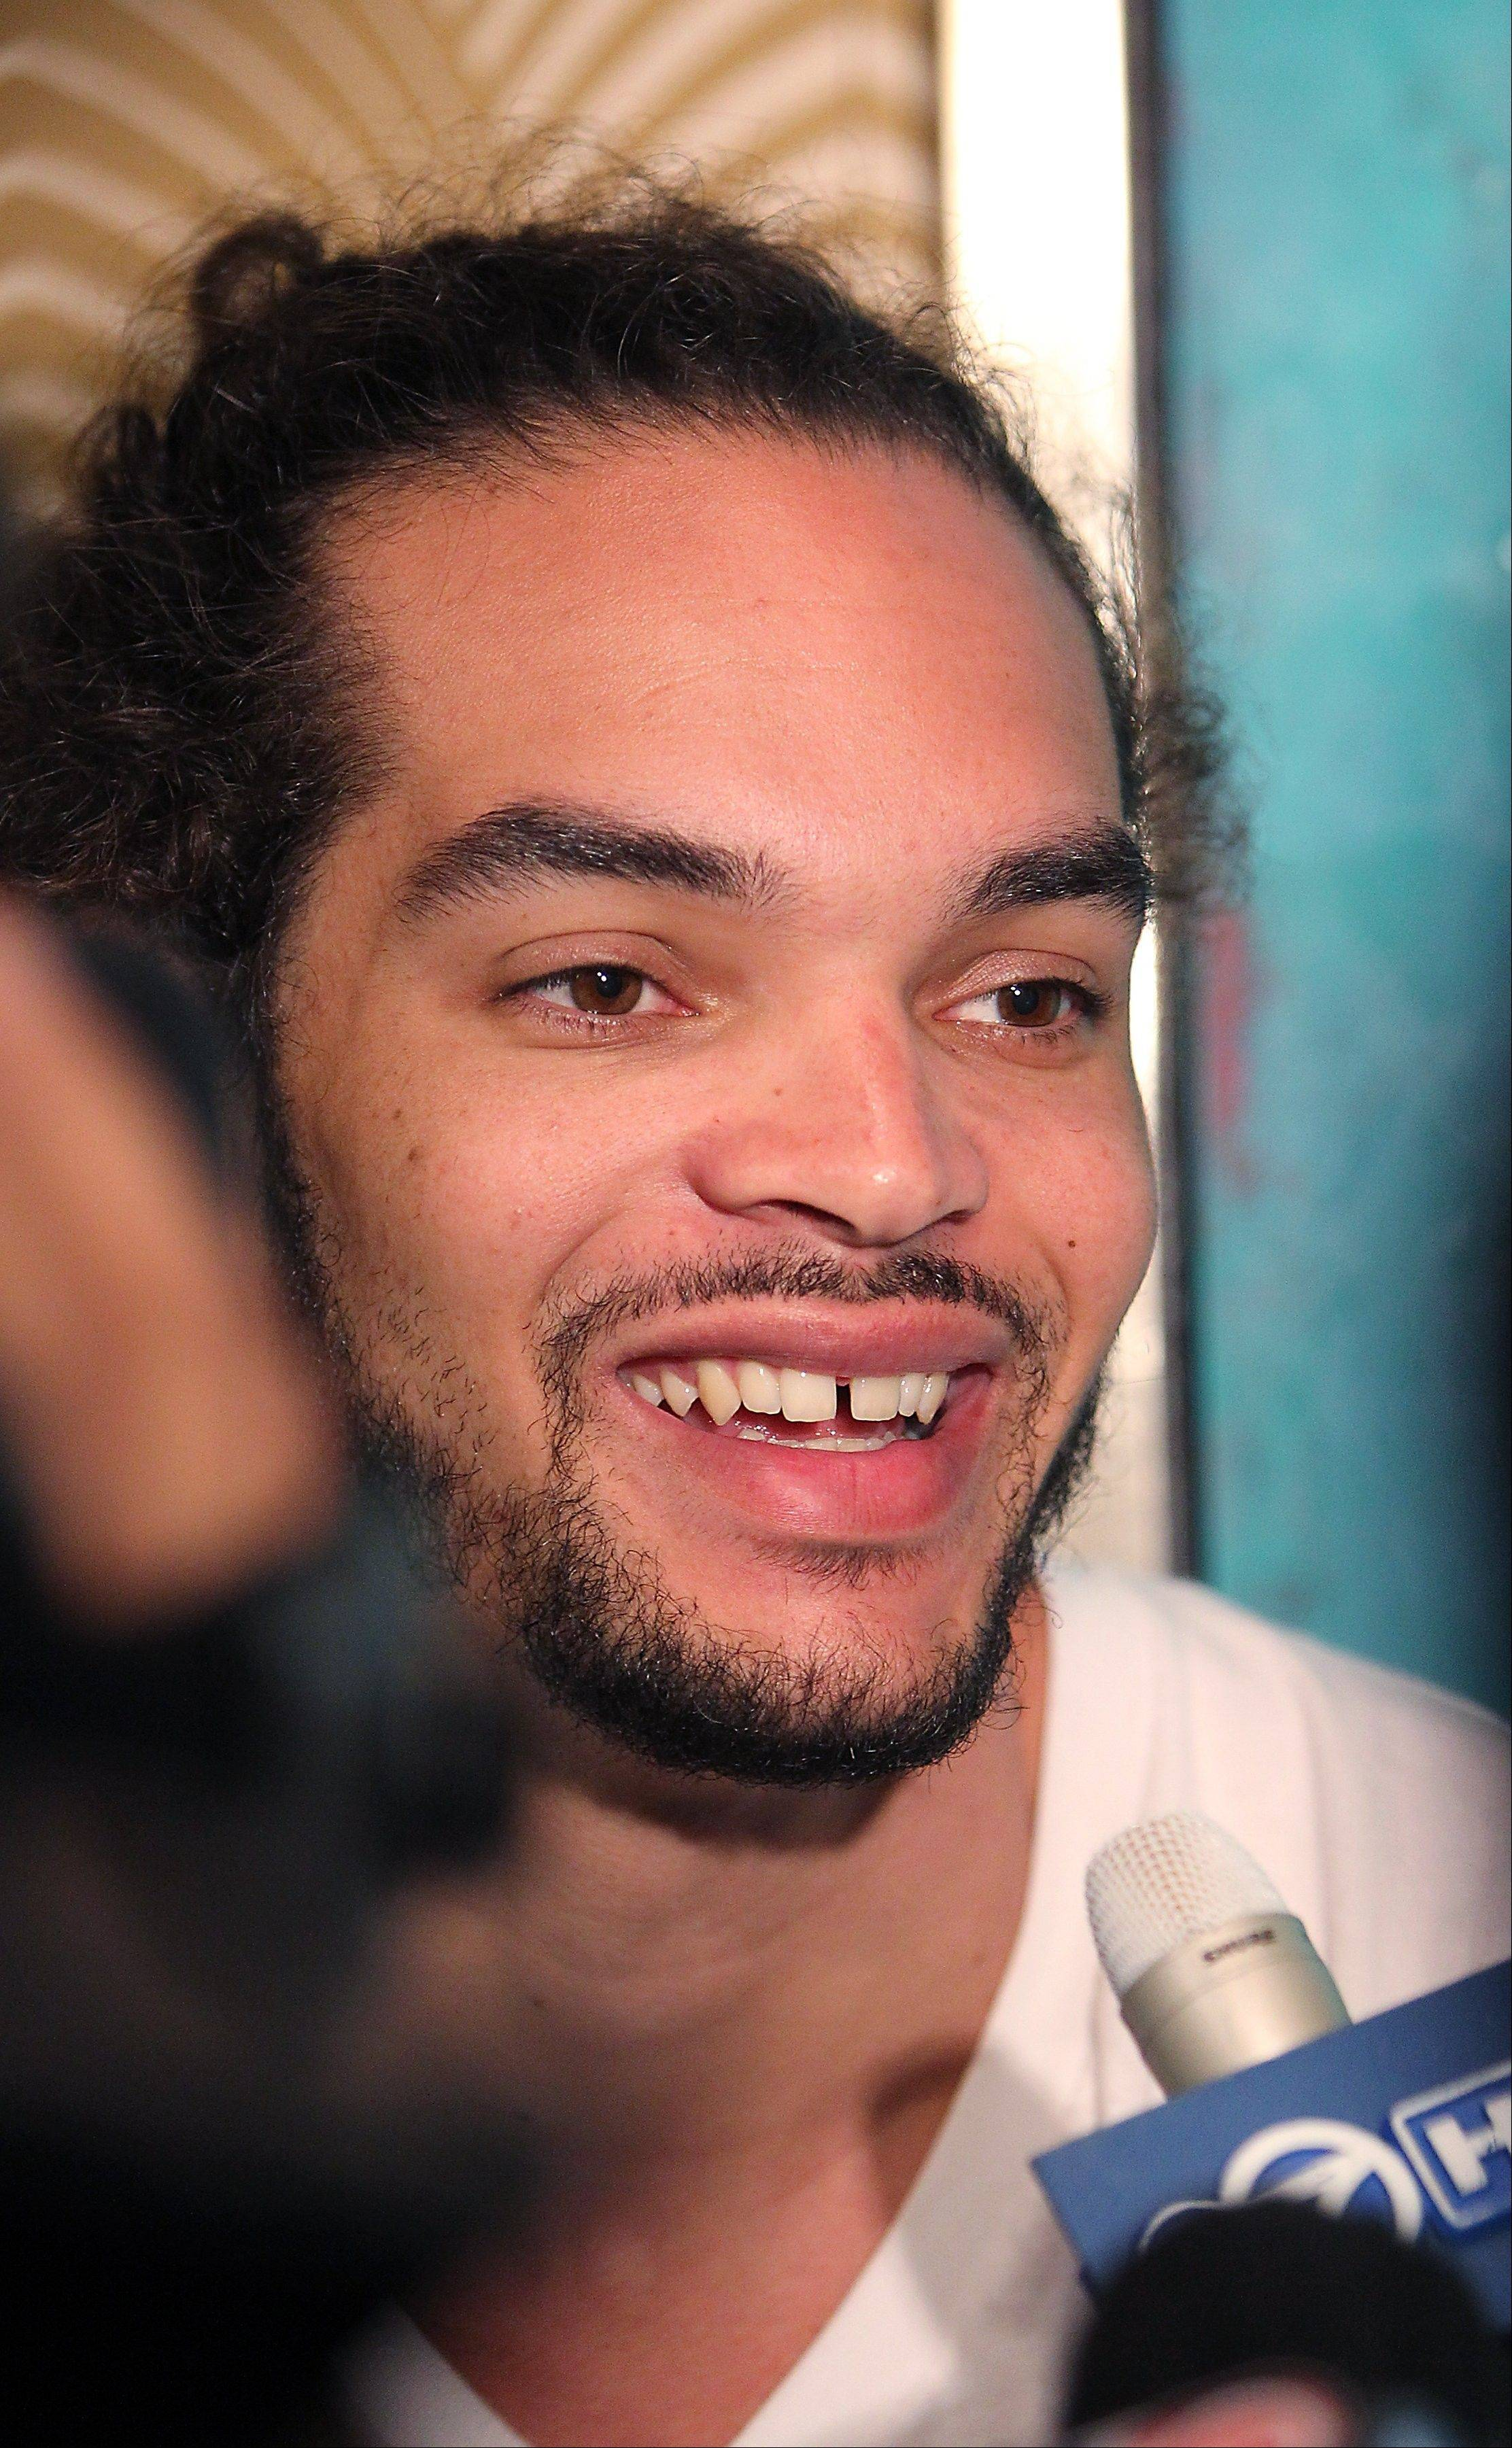 The Bulls' Joakim Noah talks to the media Tuesday.